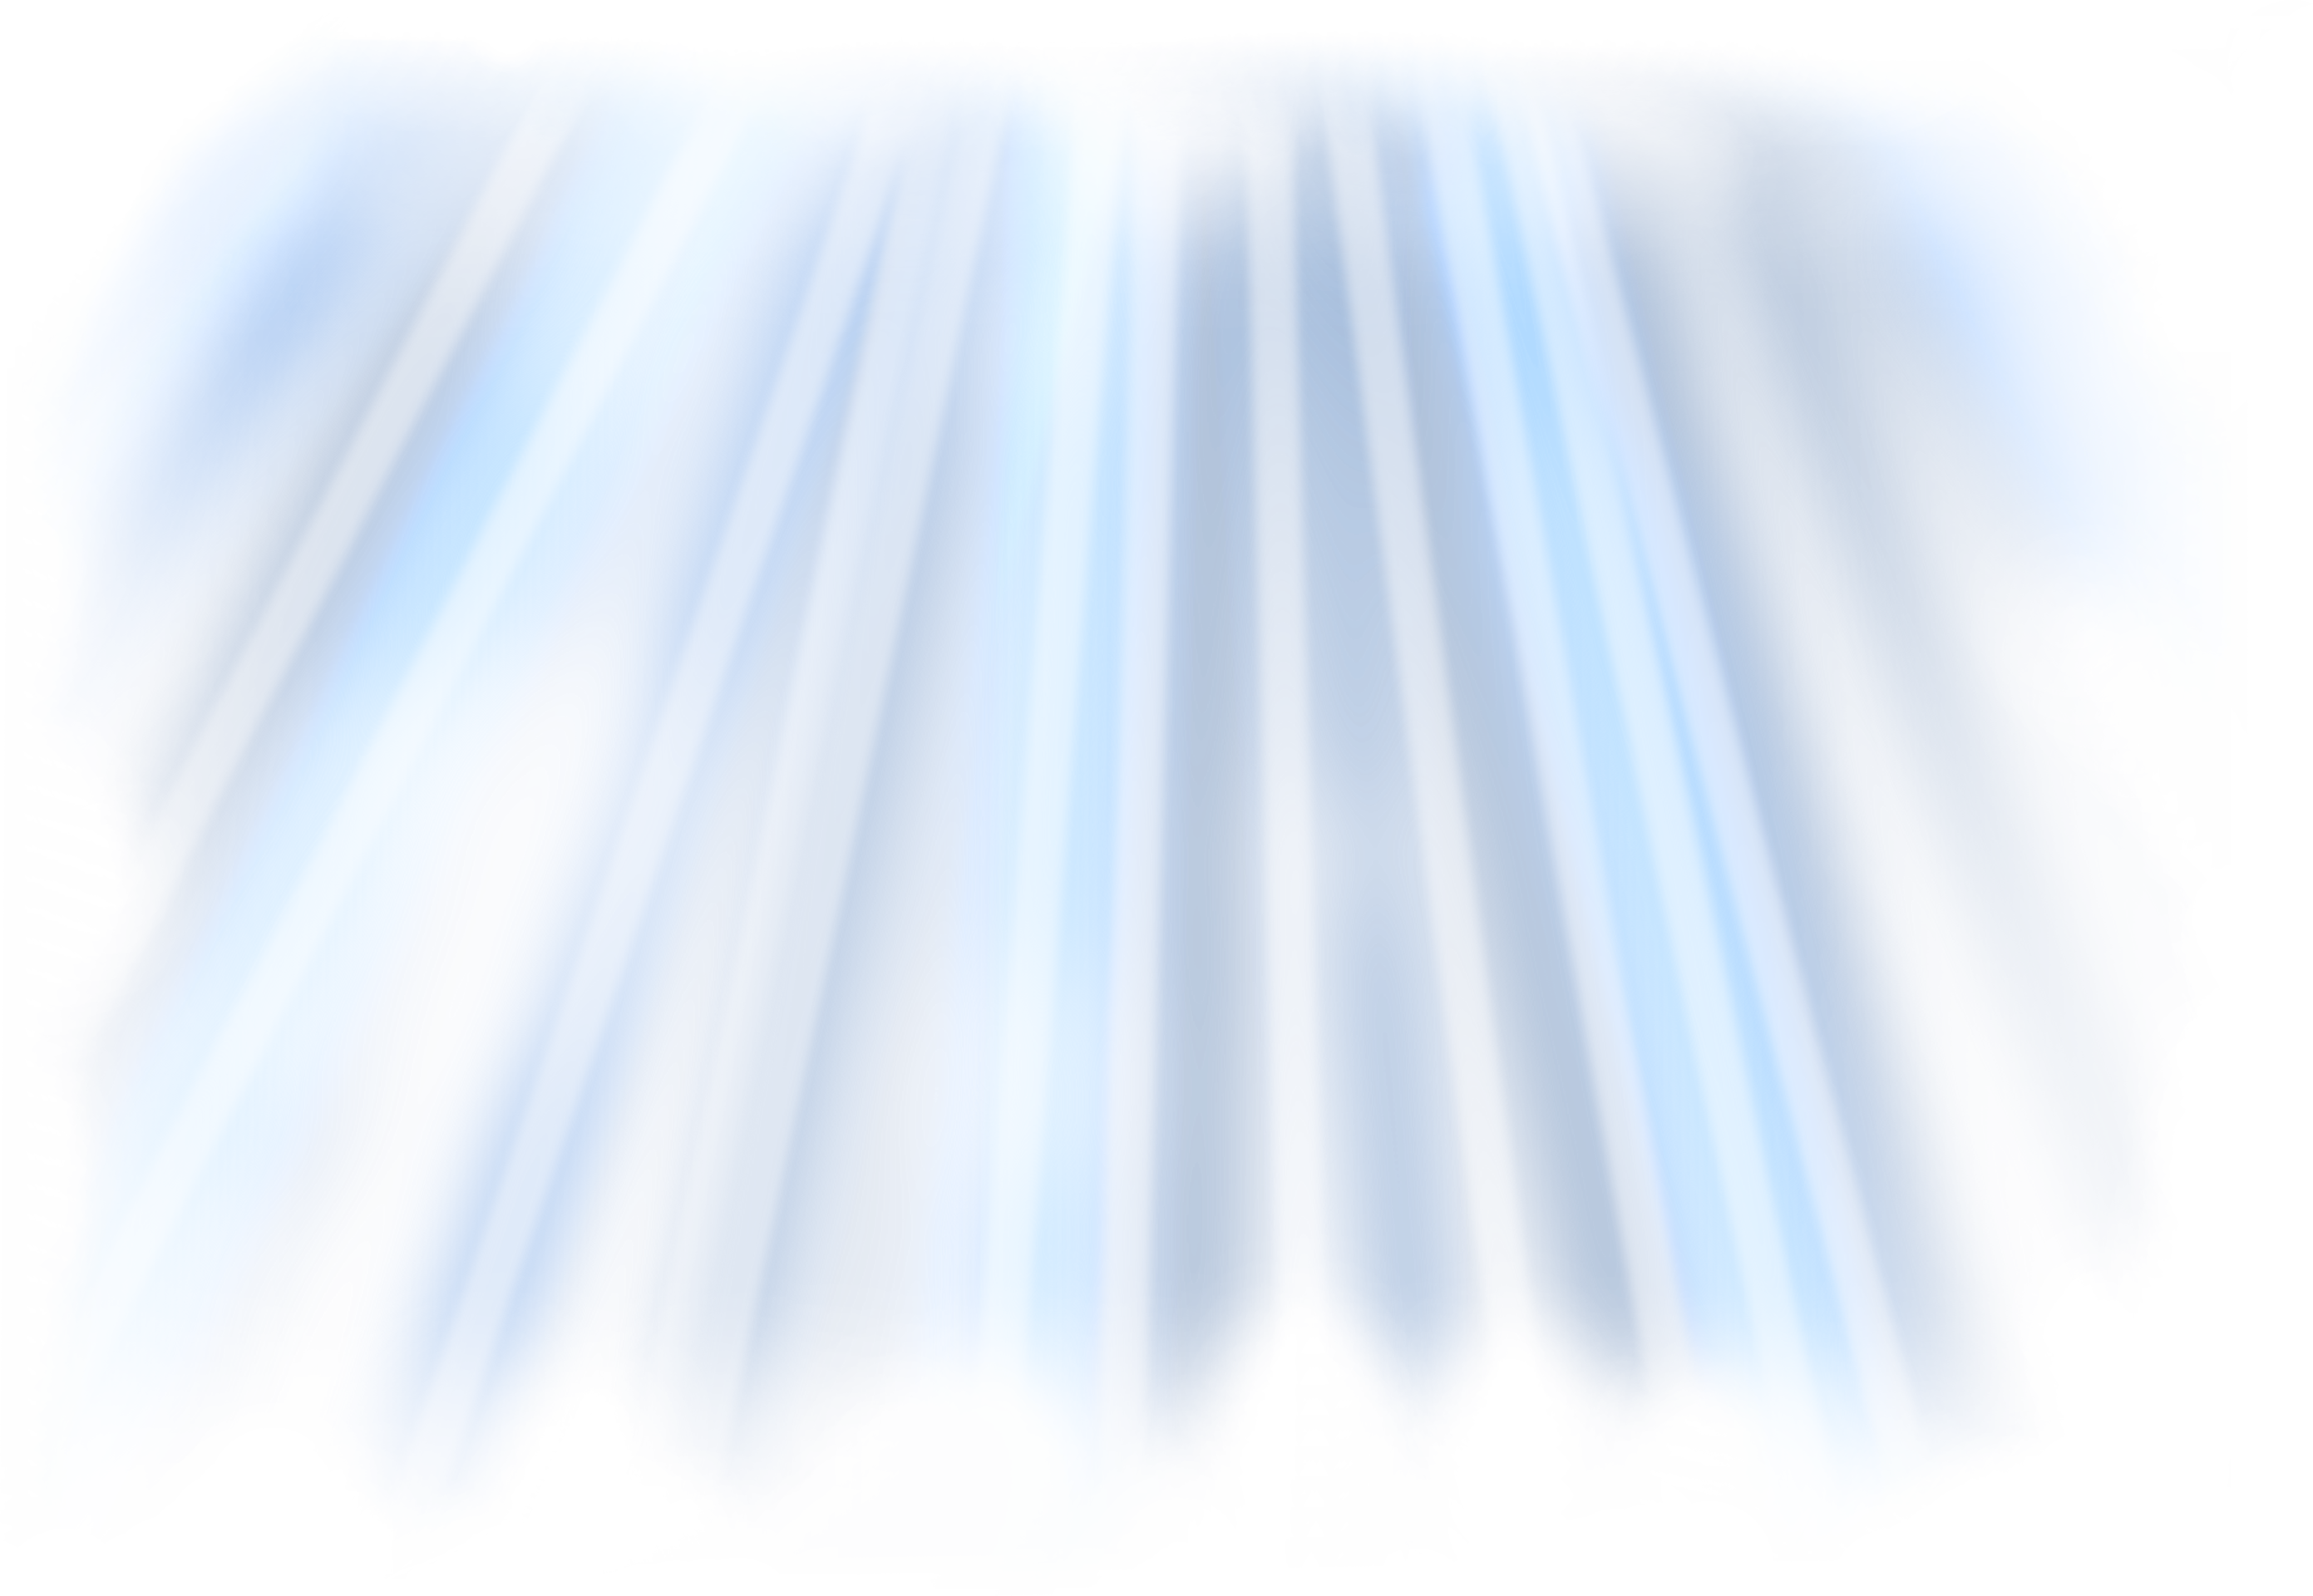 Light Rays Transparent - PNG Rays Of Light Transparent Rays Of Light.PNG Images. | PlusPNG